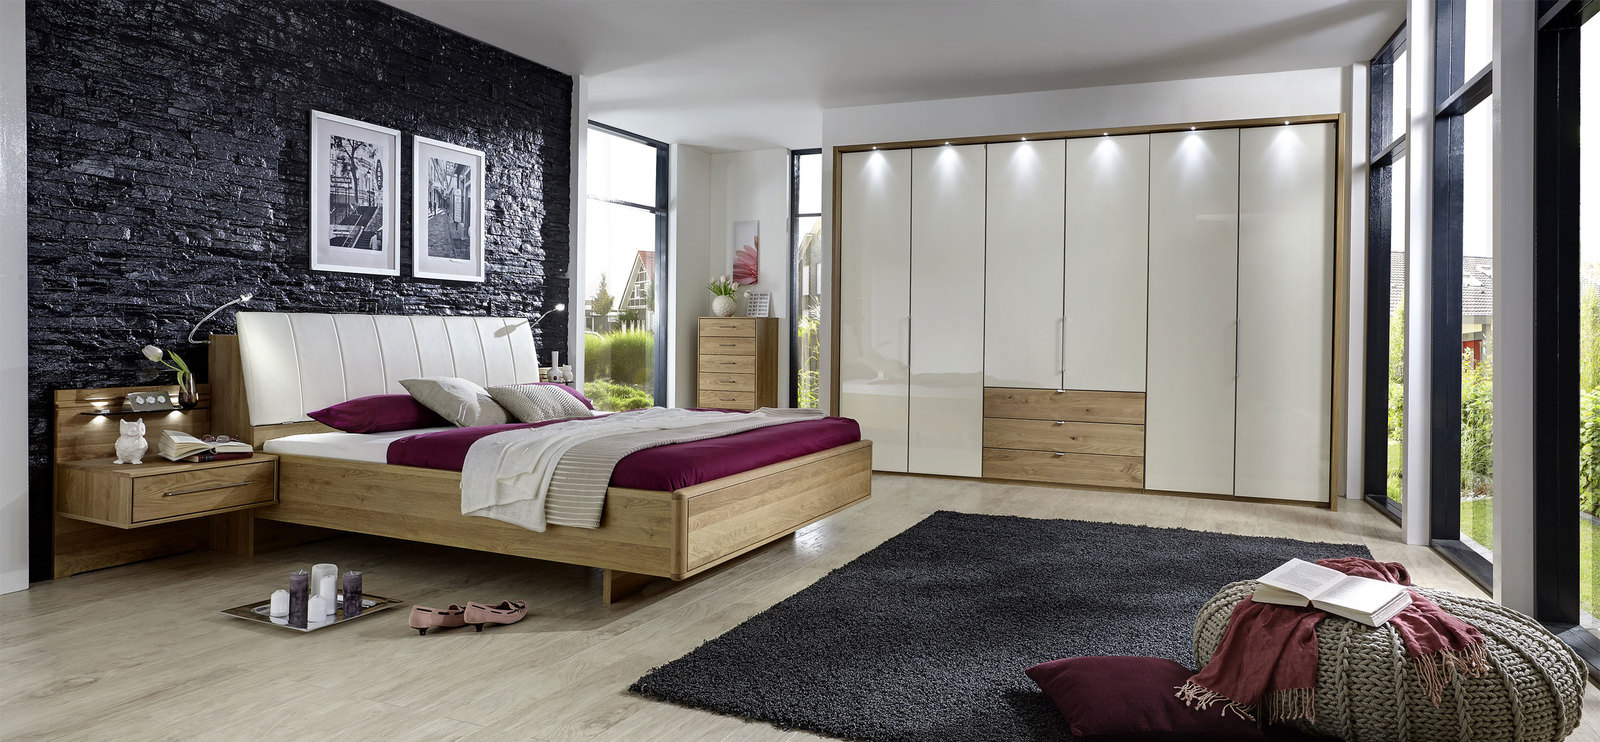 mondo schlafzimmer badezimmer schlafzimmer sessel. Black Bedroom Furniture Sets. Home Design Ideas